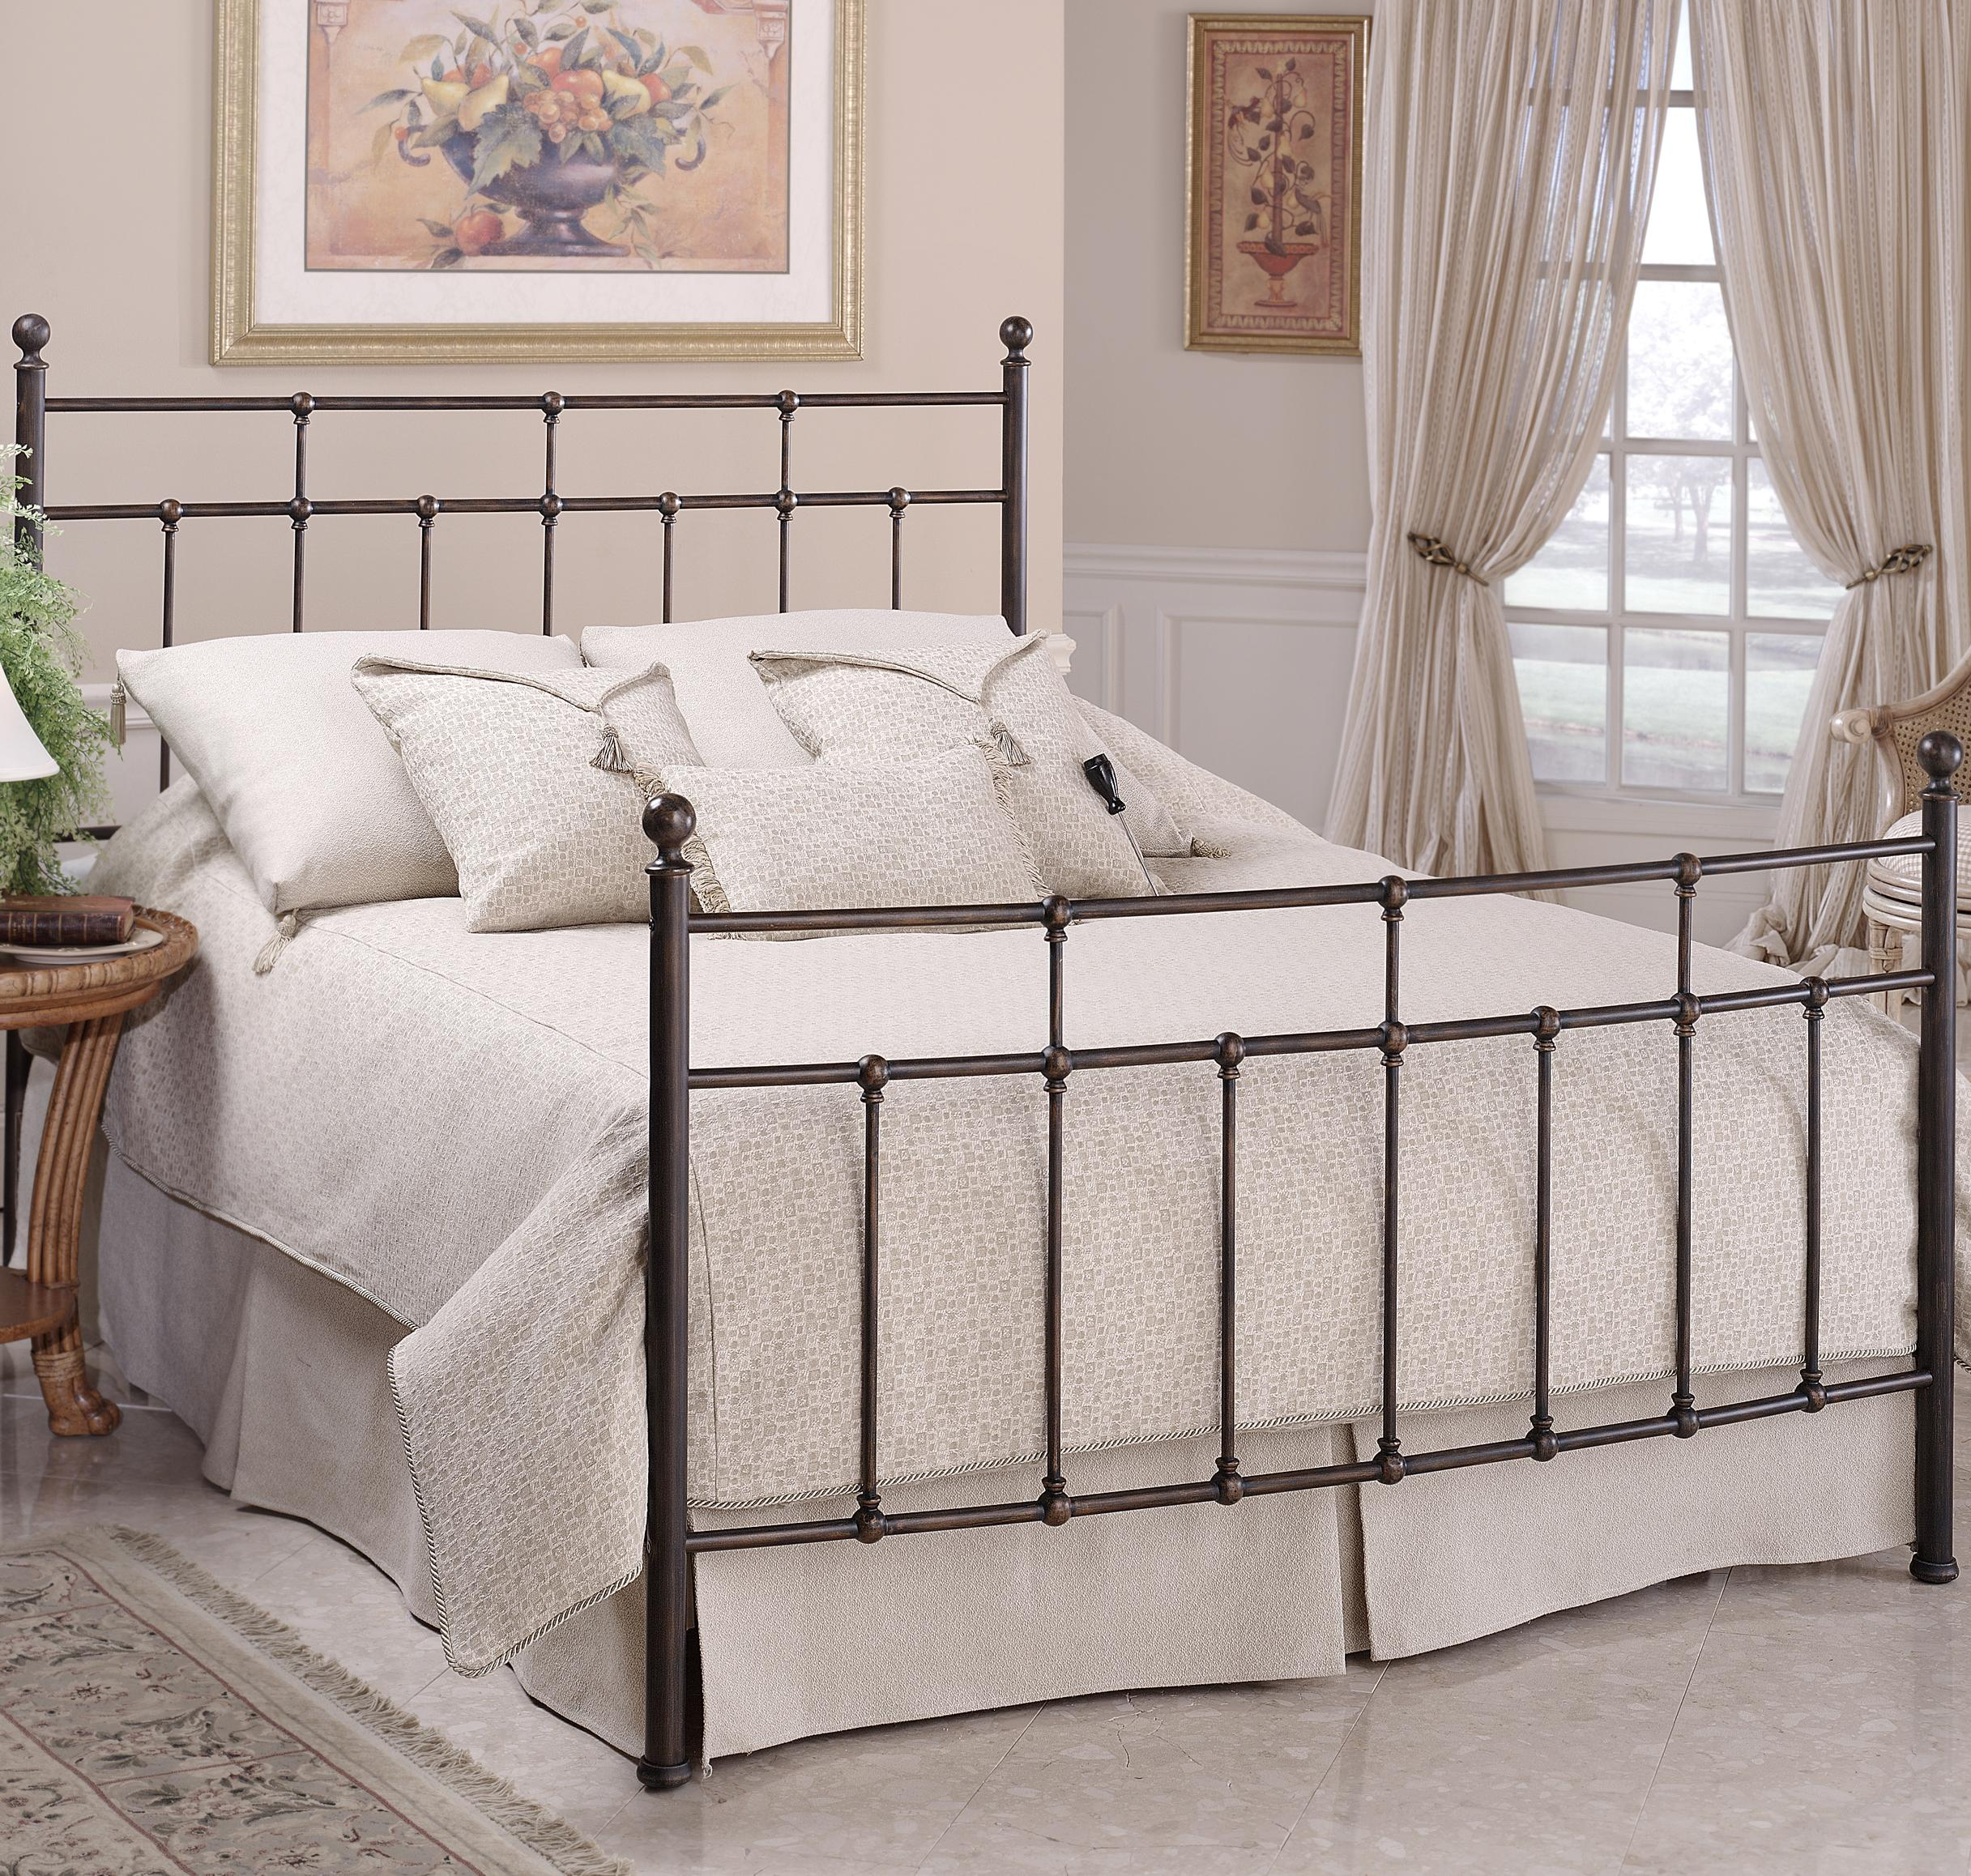 Metal Beds King Providence Bed by Hillsdale at Steger's Furniture